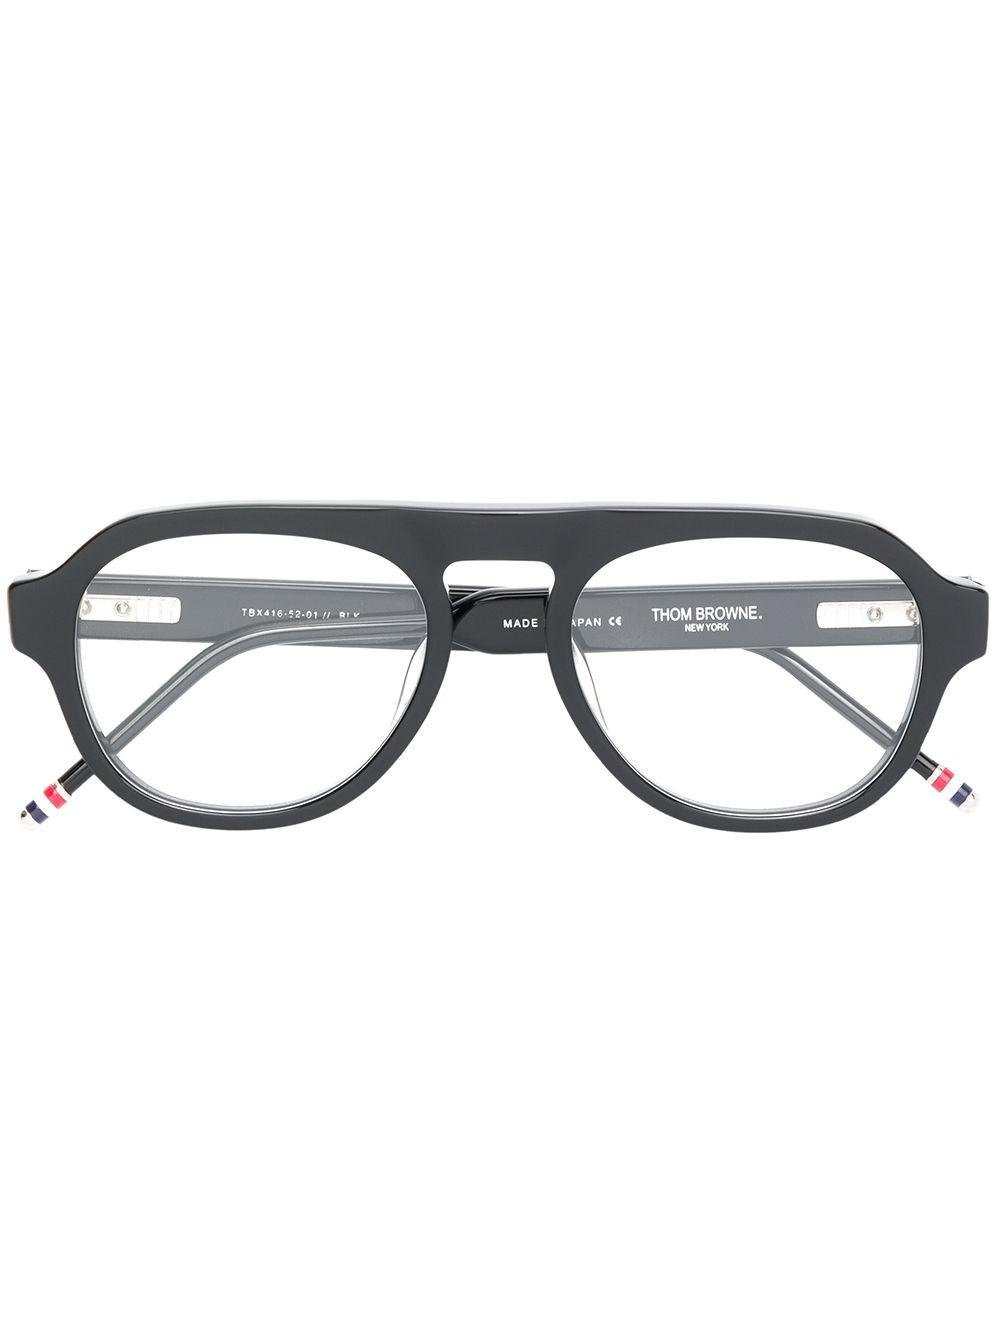 0be3ac7d0c1f Thom Browne Round Frame Glasses in Black for Men - Lyst